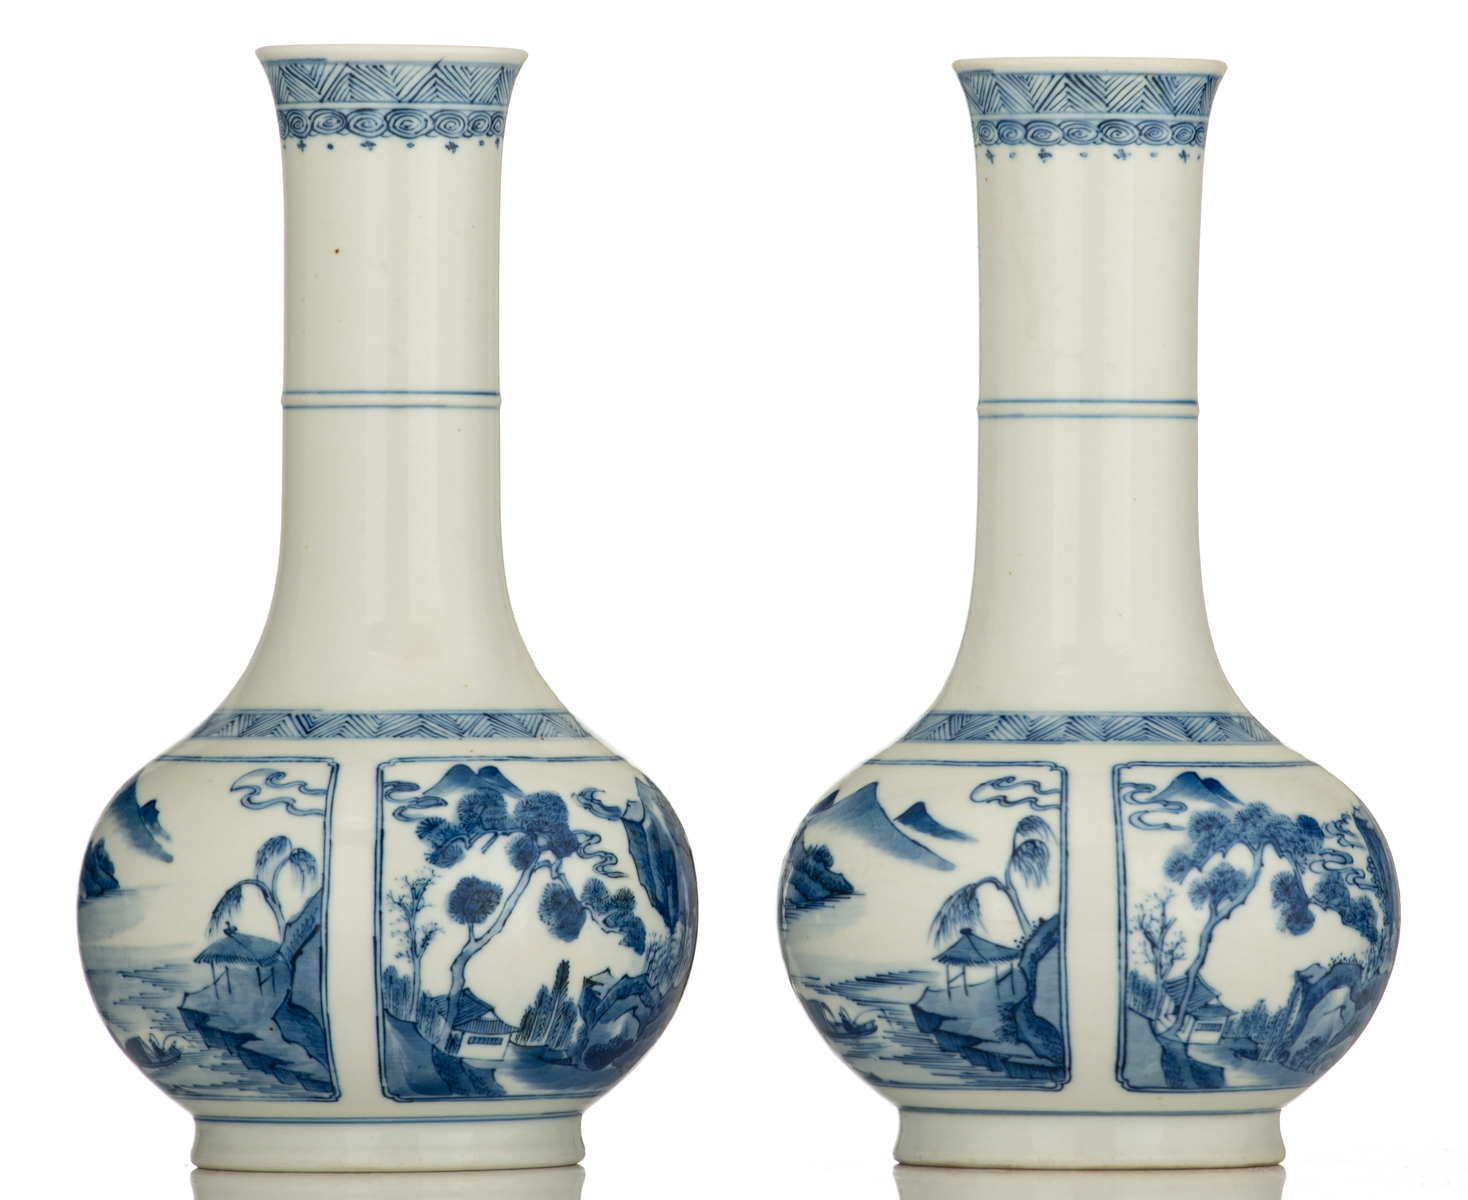 Lot 46 - Two Chinese blue and white porcelain bottle vases, decorated with fishes in a mountain lake, on